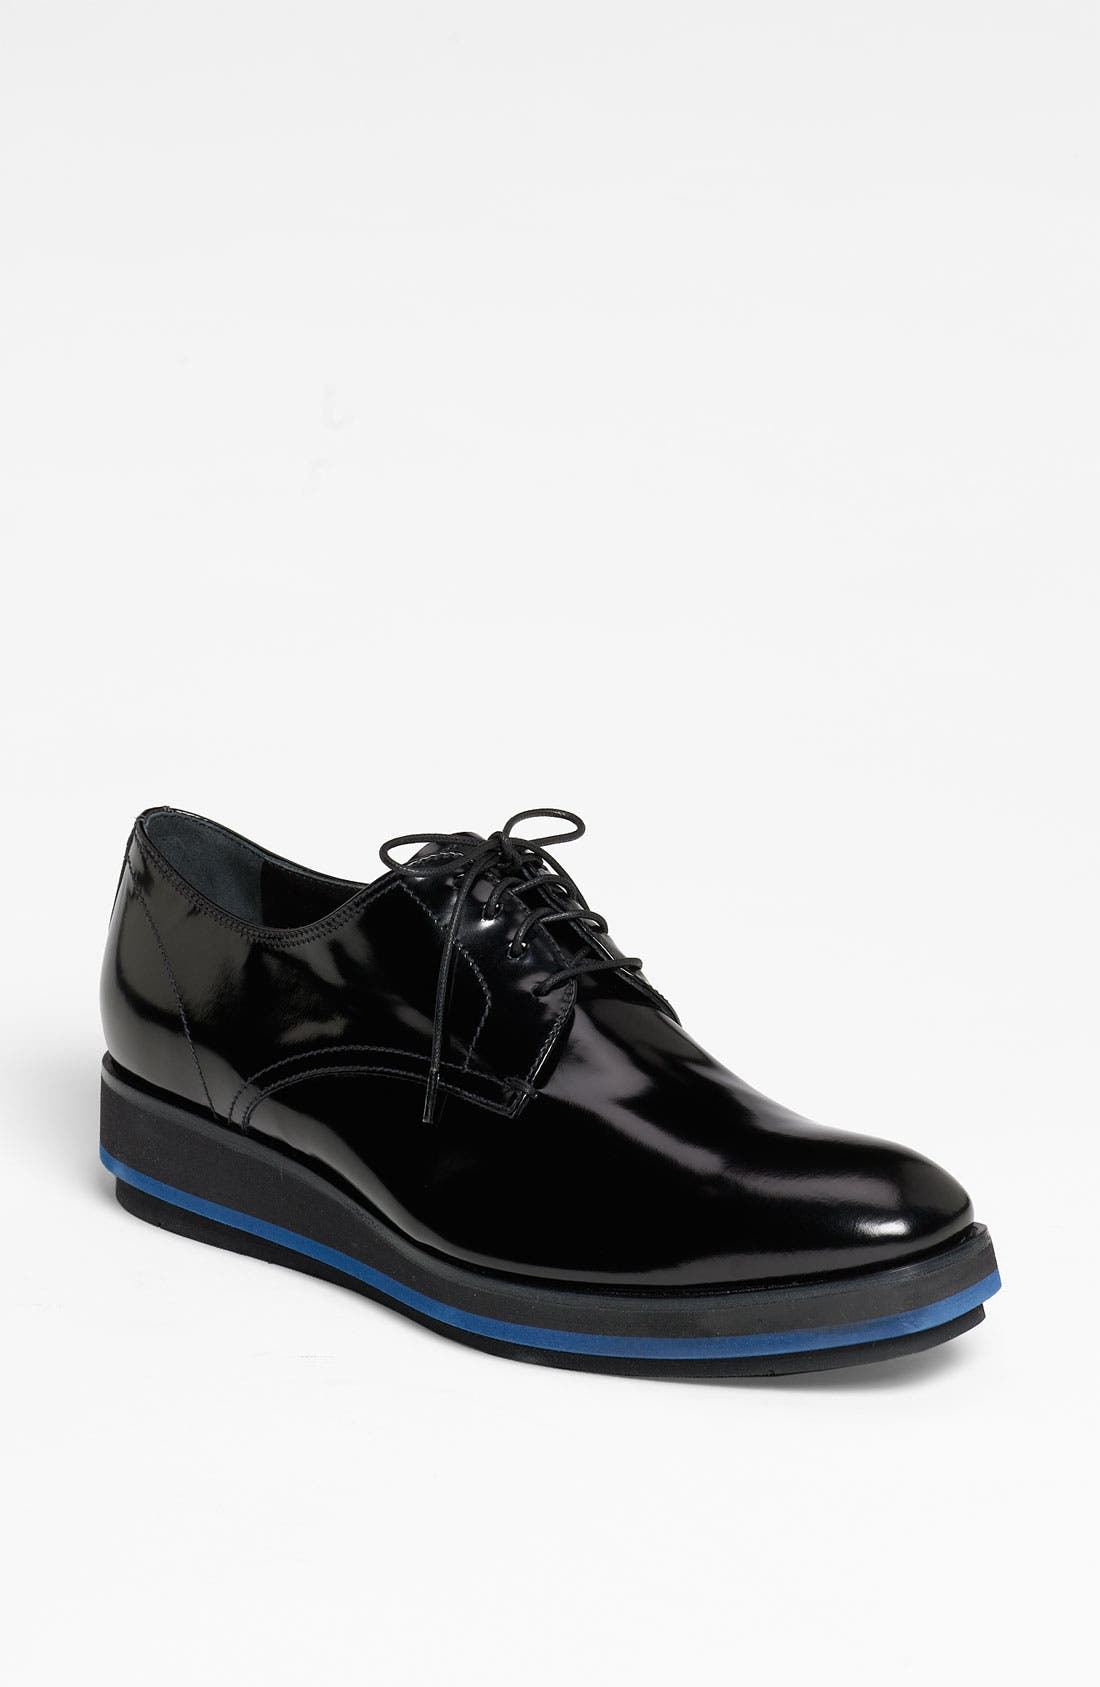 Alternate Image 1 Selected - Prada Platform Oxford